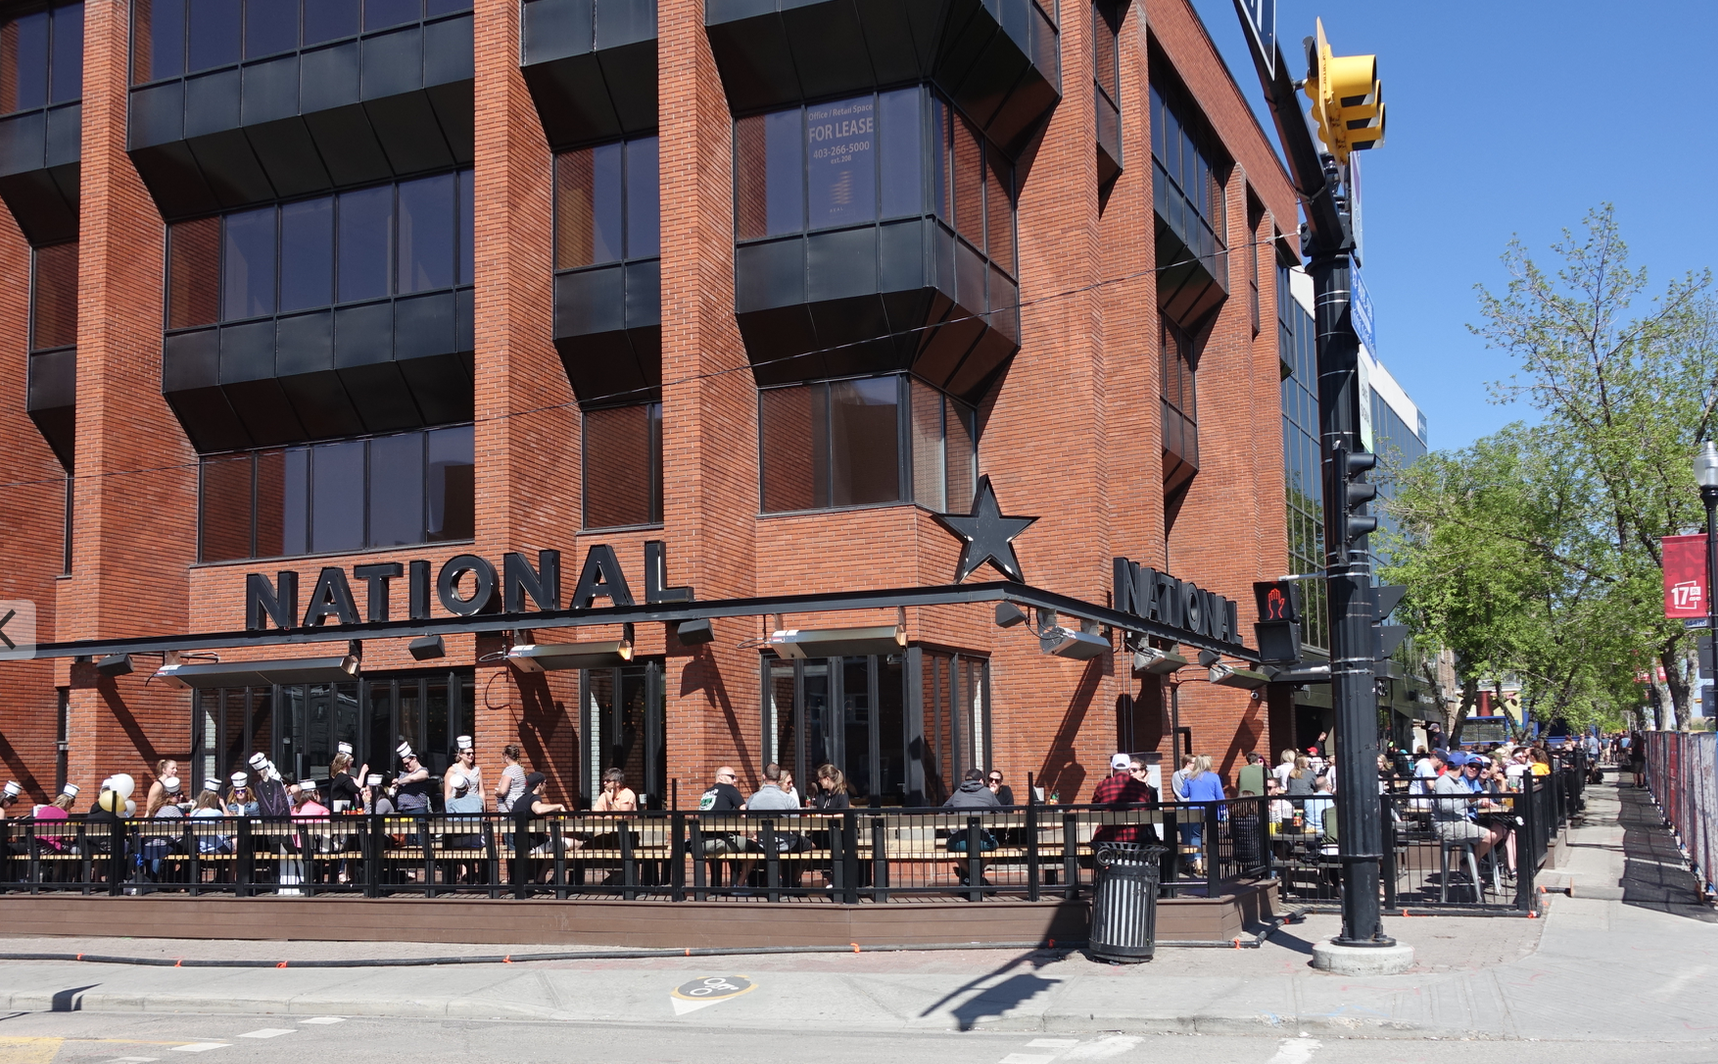 17th Avenue is lined with pubs and patios.